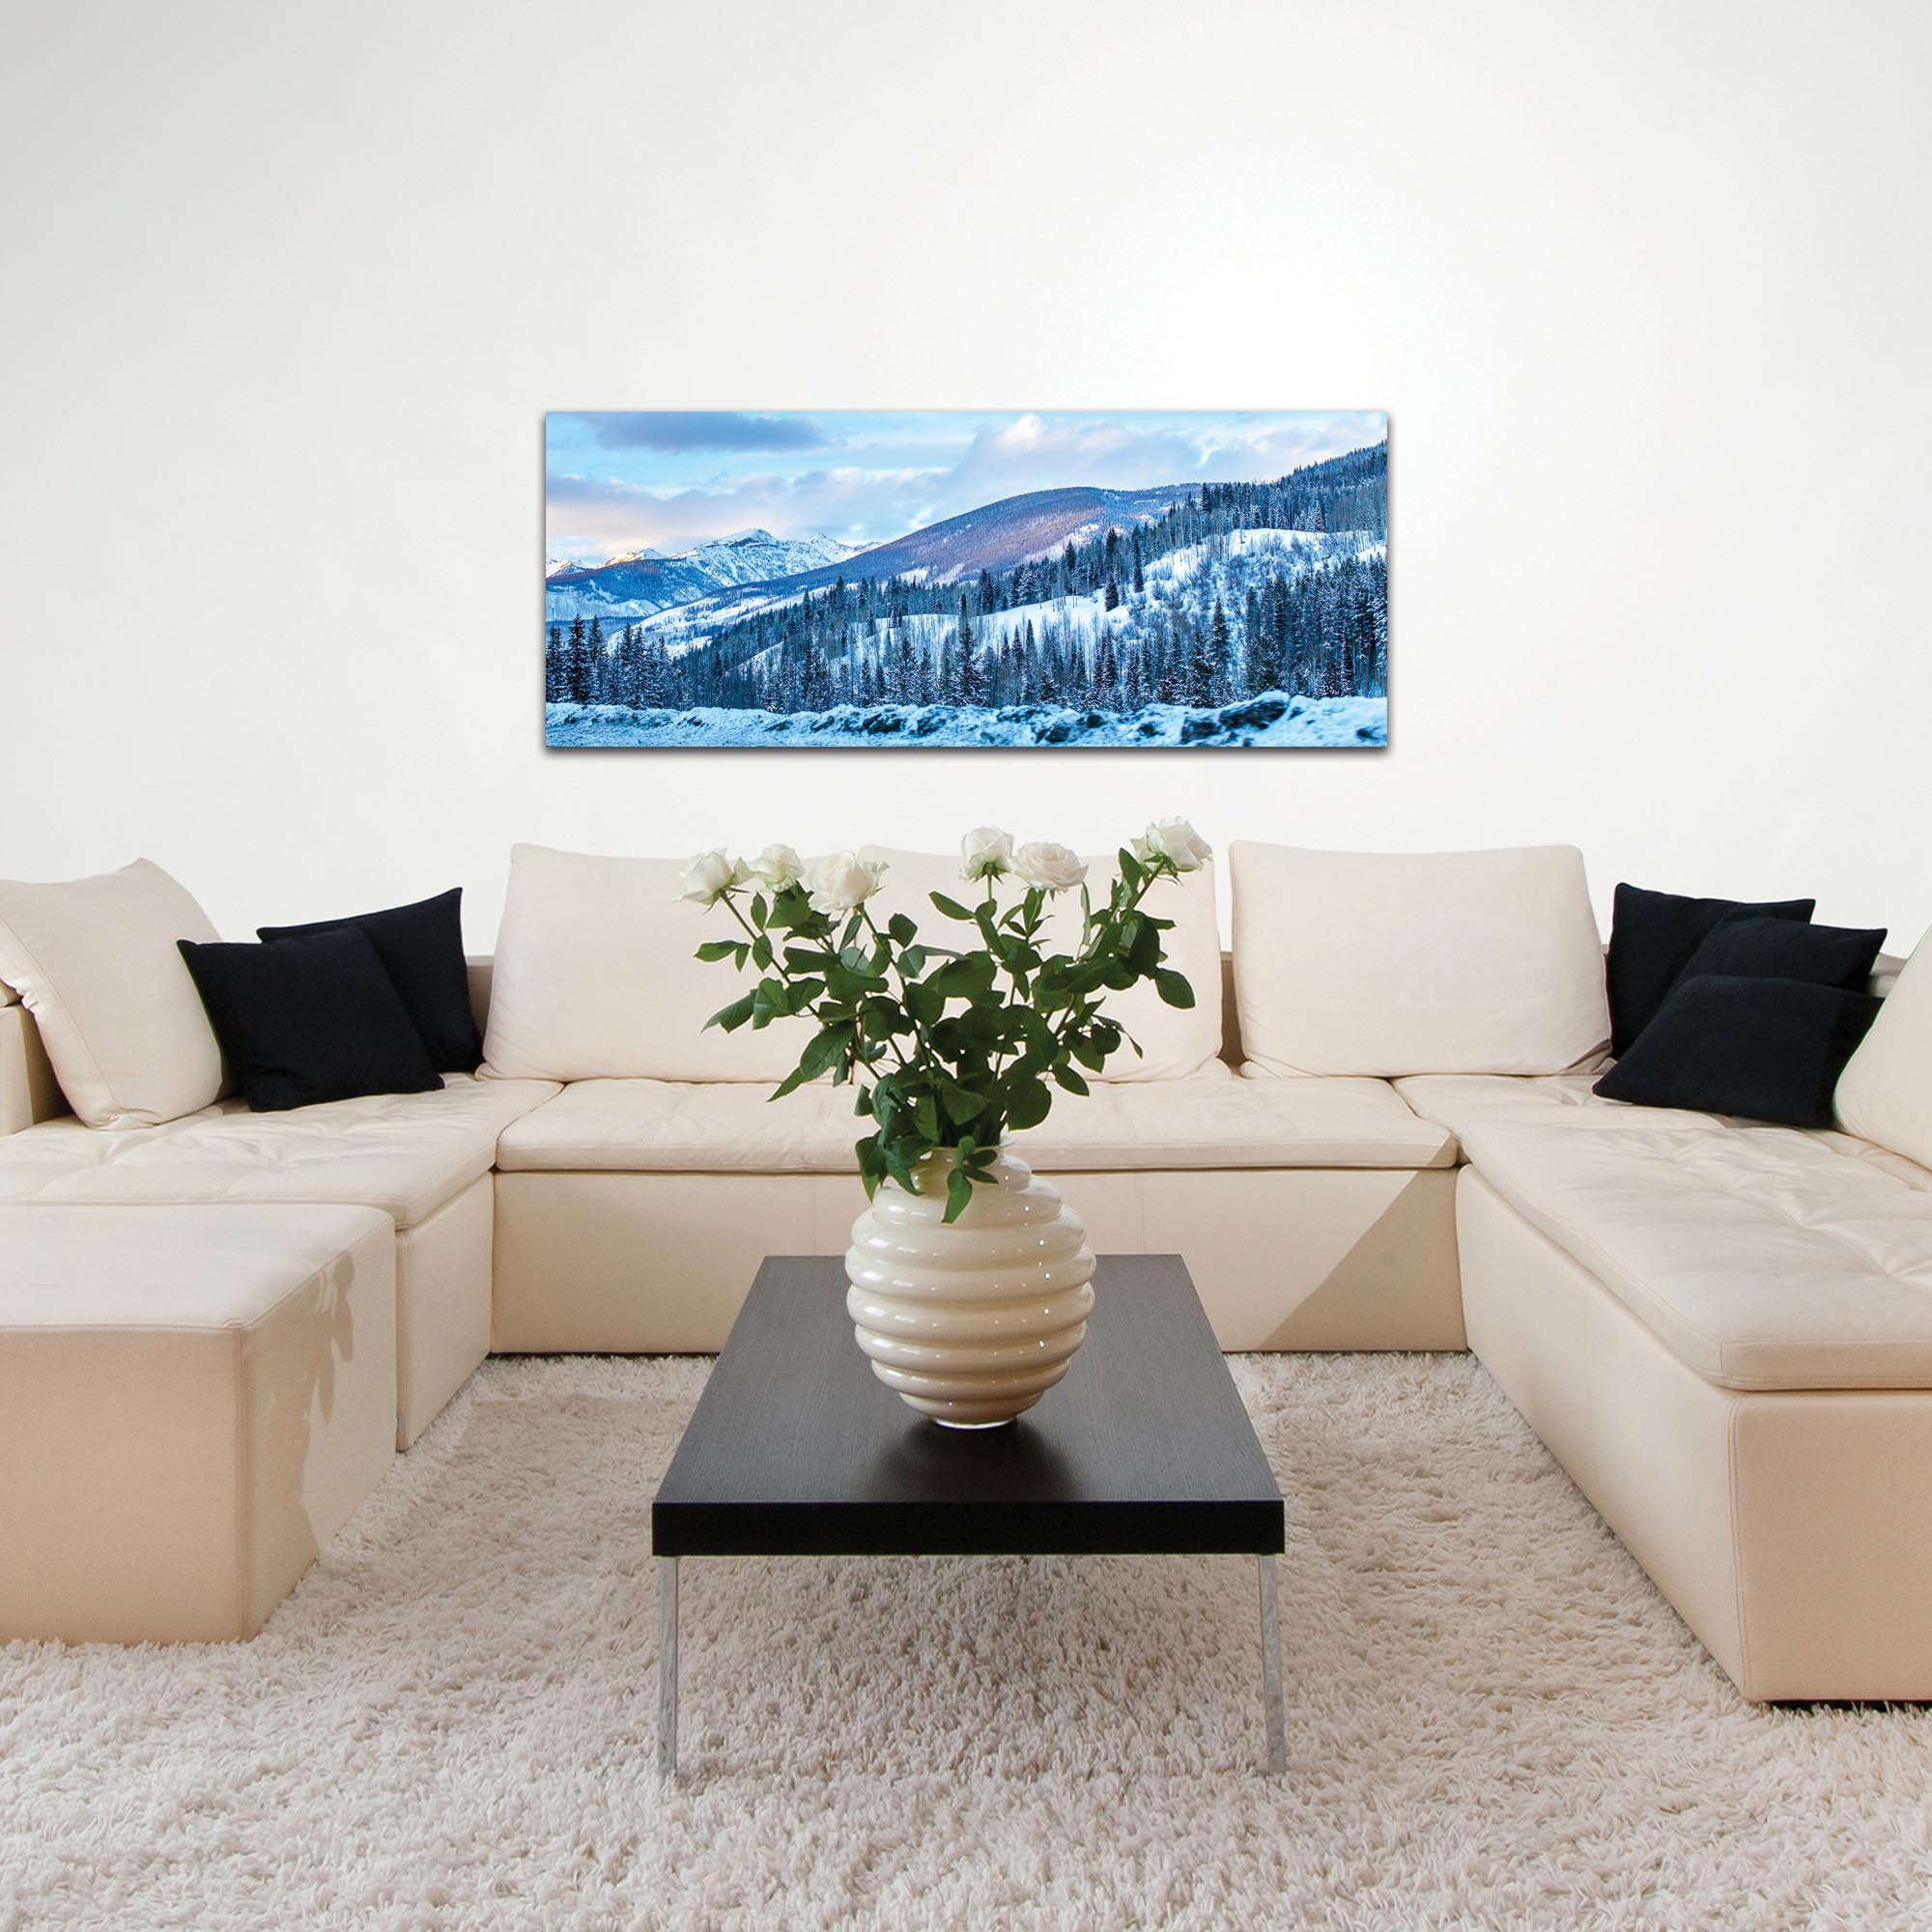 Landscape Photography 'The Slopes' - Winter Scene Art on Metal or Plexiglass - Lifestyle View